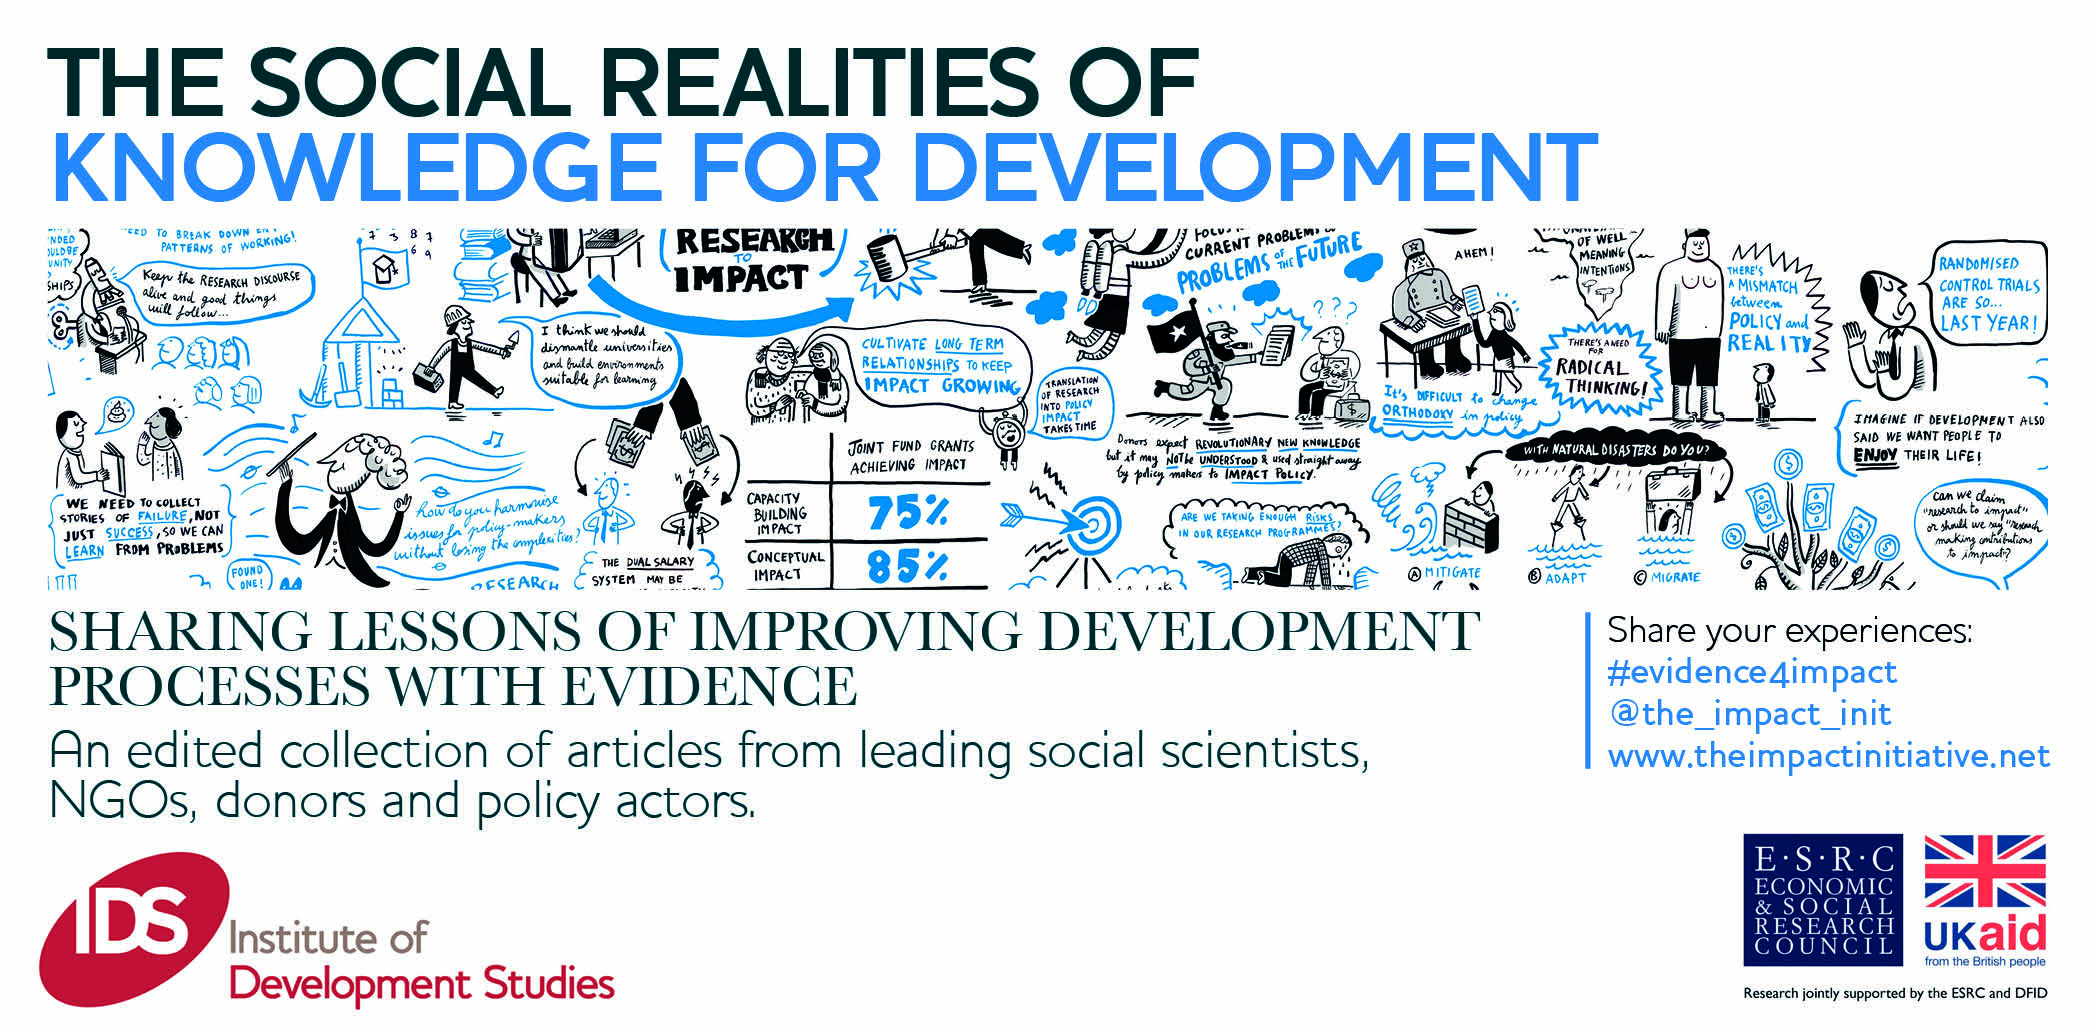 social-realities-of-knowledge-for-development_graphic